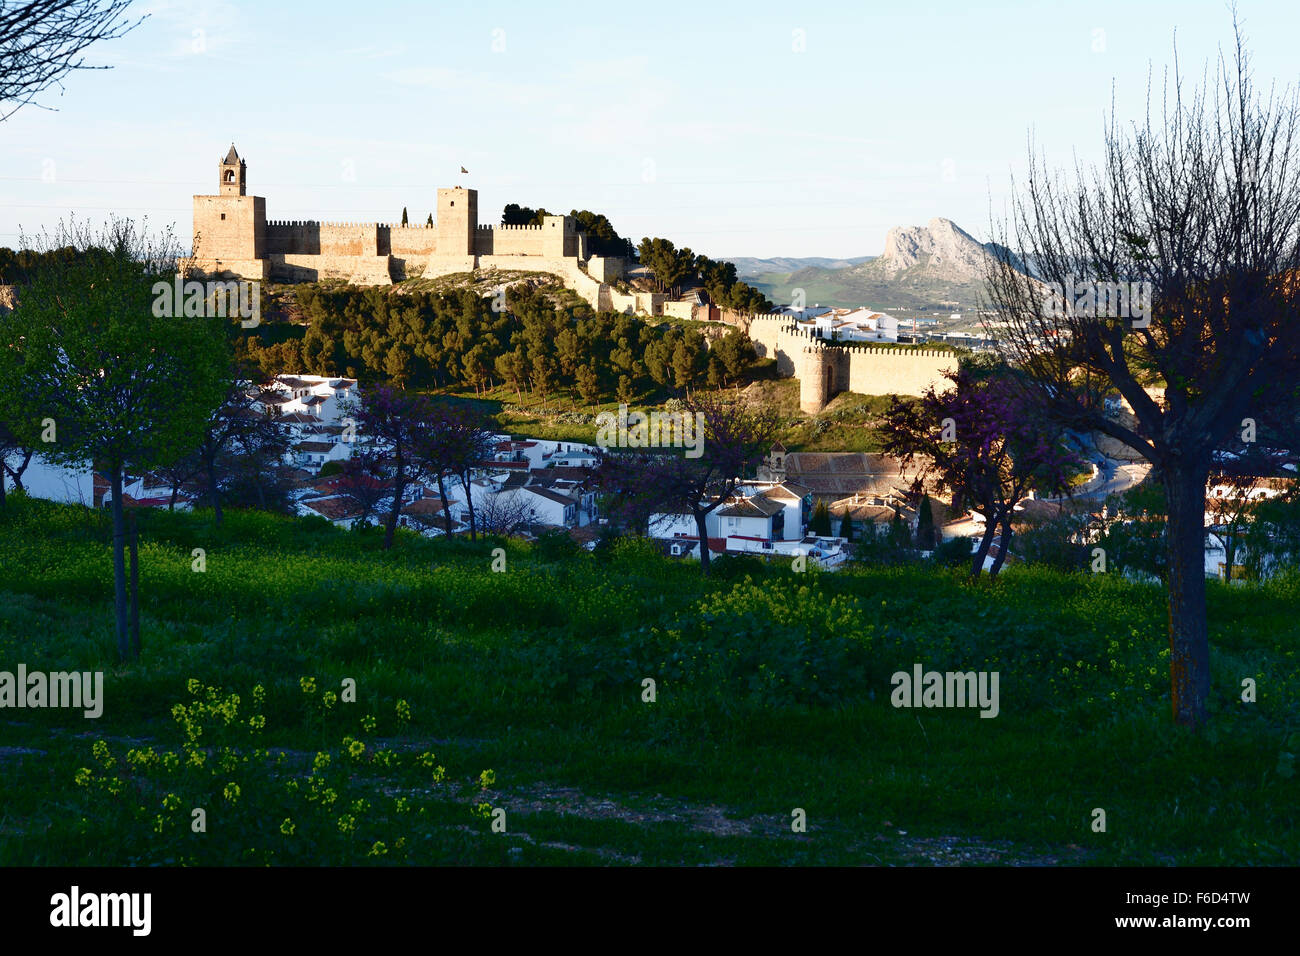 View Alcazaba fortress, Antequera. Malaga. Spain - Stock Image